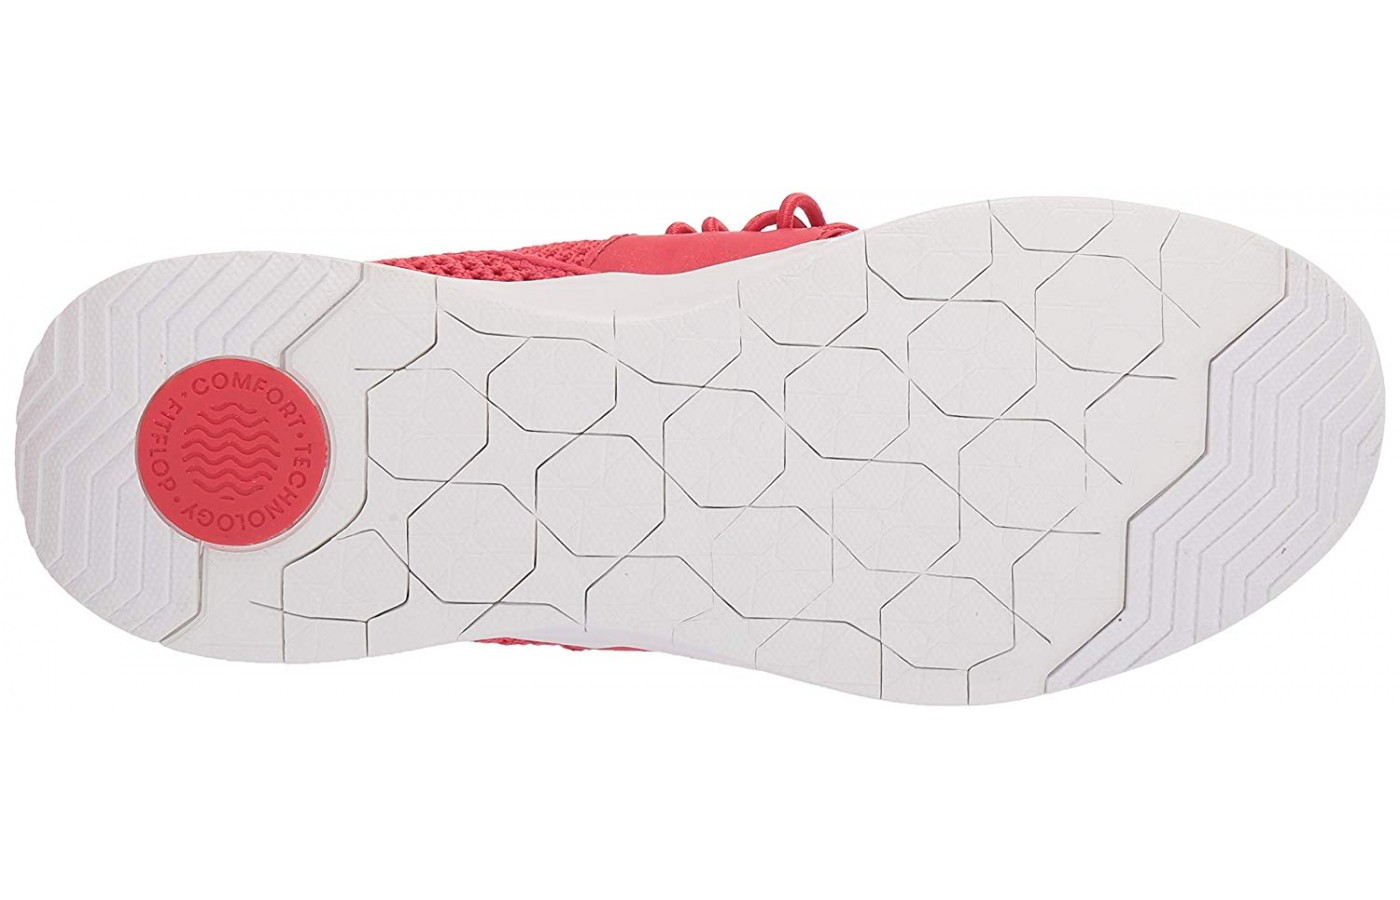 FitFlop Airmesh Lace-Up Sole